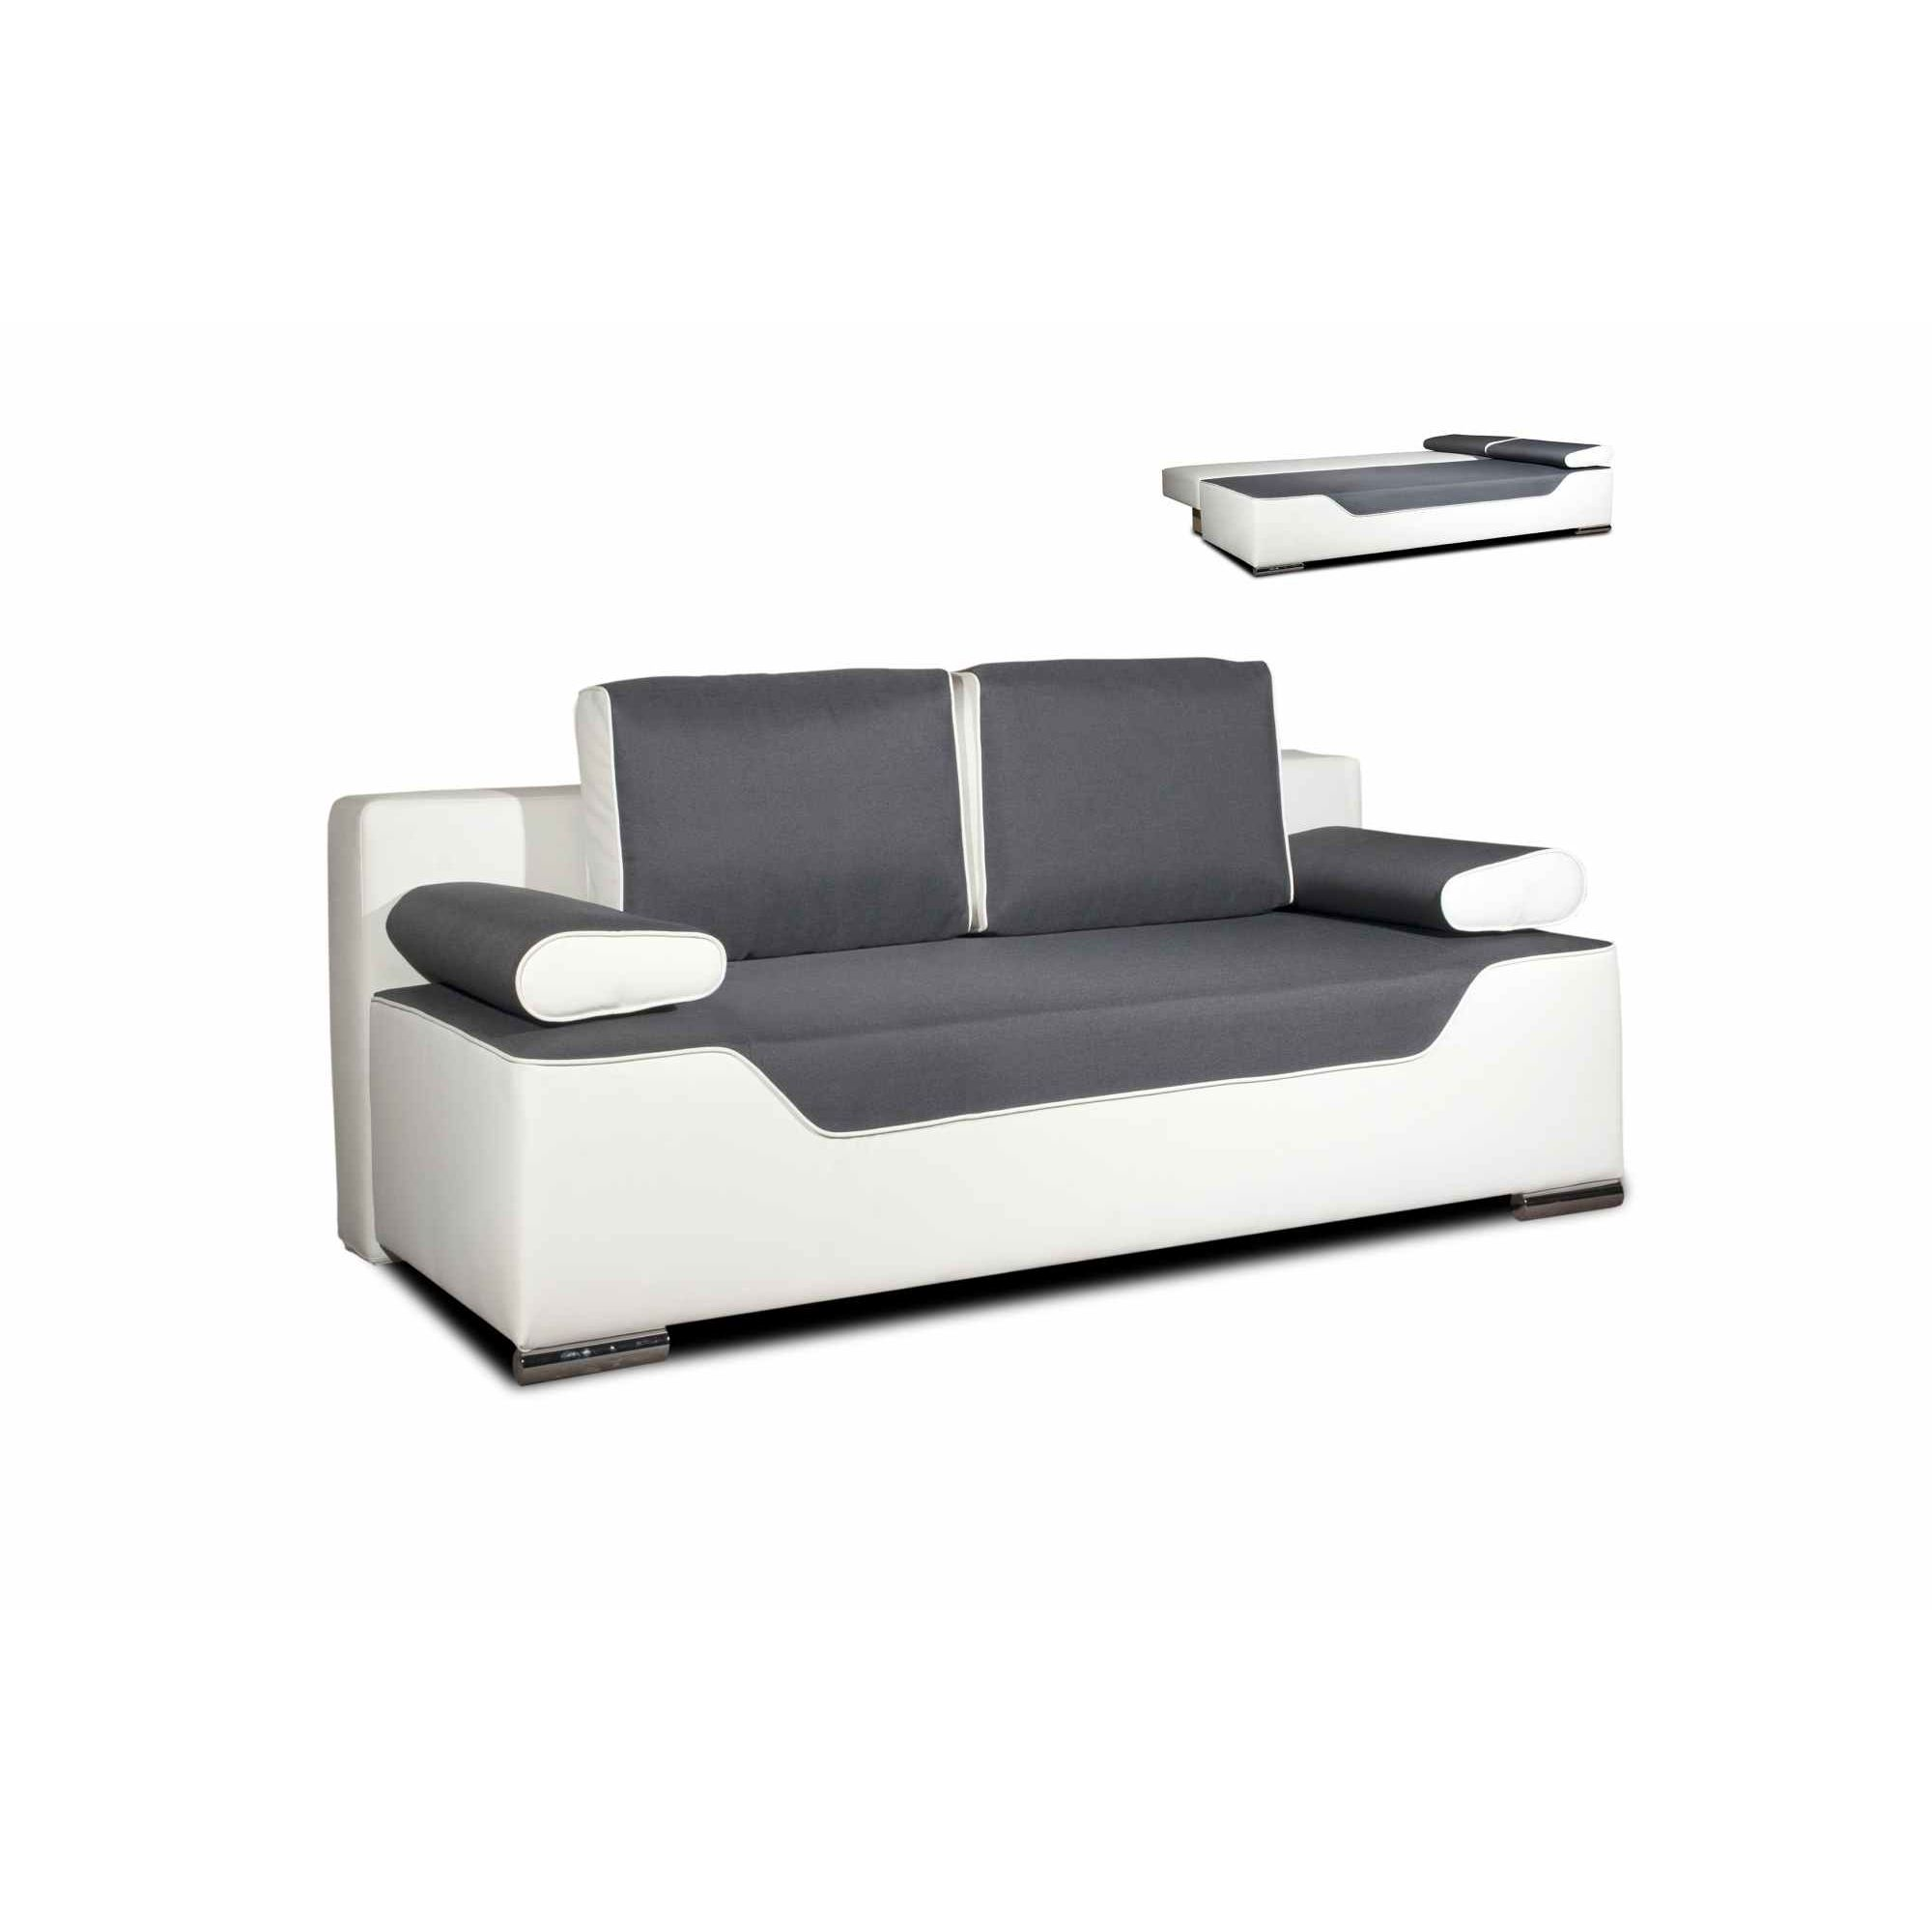 DECO IN PARIS Canape 3 Places Convertible Gris Et Blanc